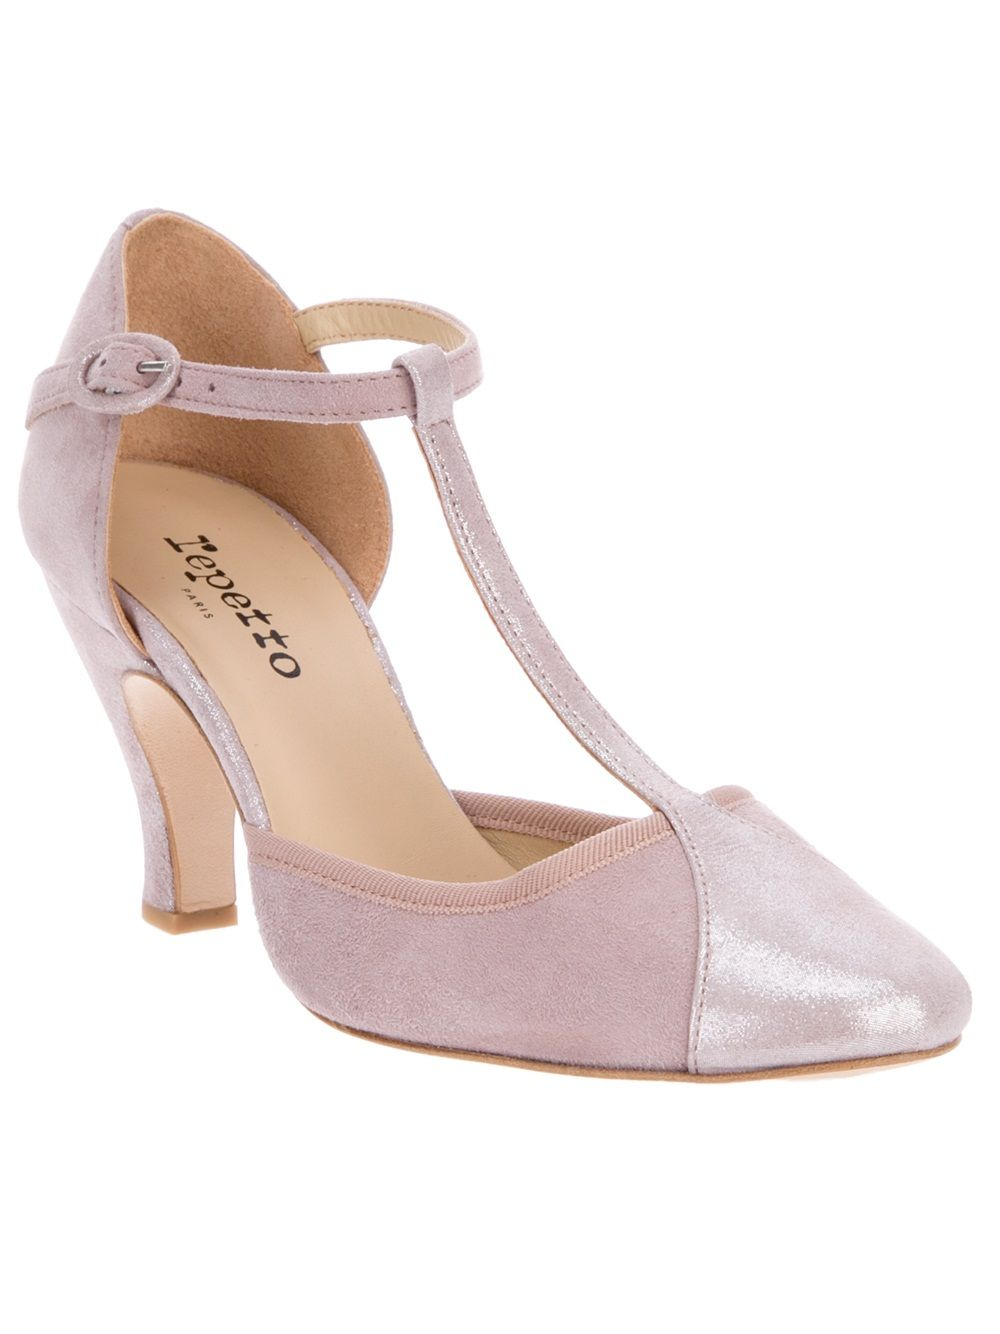 Sugar Pink Leather Sandal From Repetto Featuring A Closed Round Toe T Bar And Front Panel With Shimmer Effect Low Kitten Heel Buckle Fastening